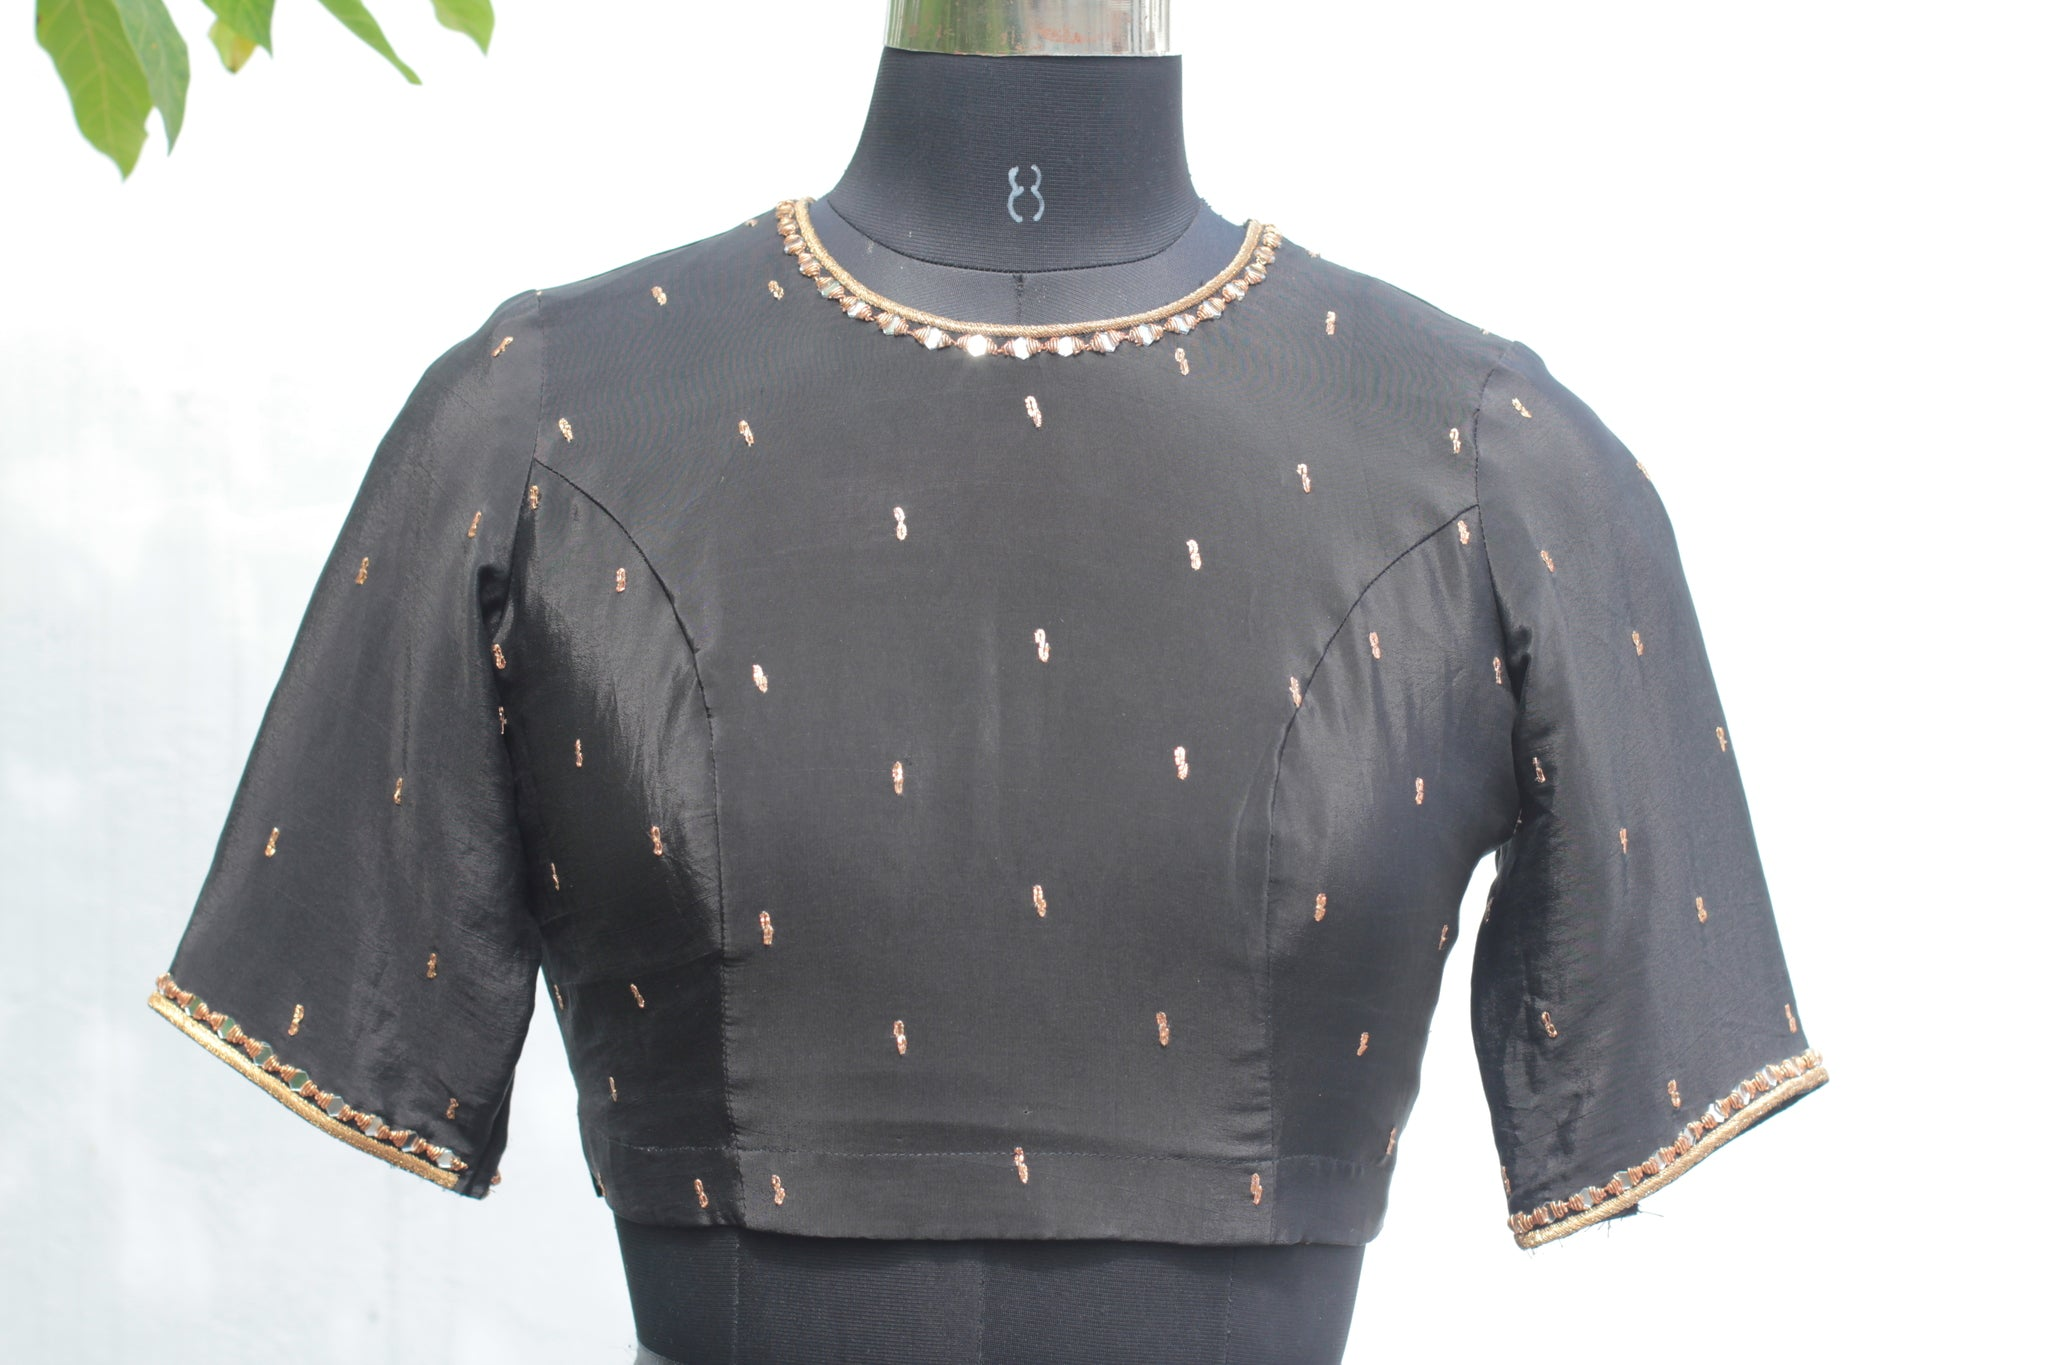 Pitta Embellished Black Crop Top